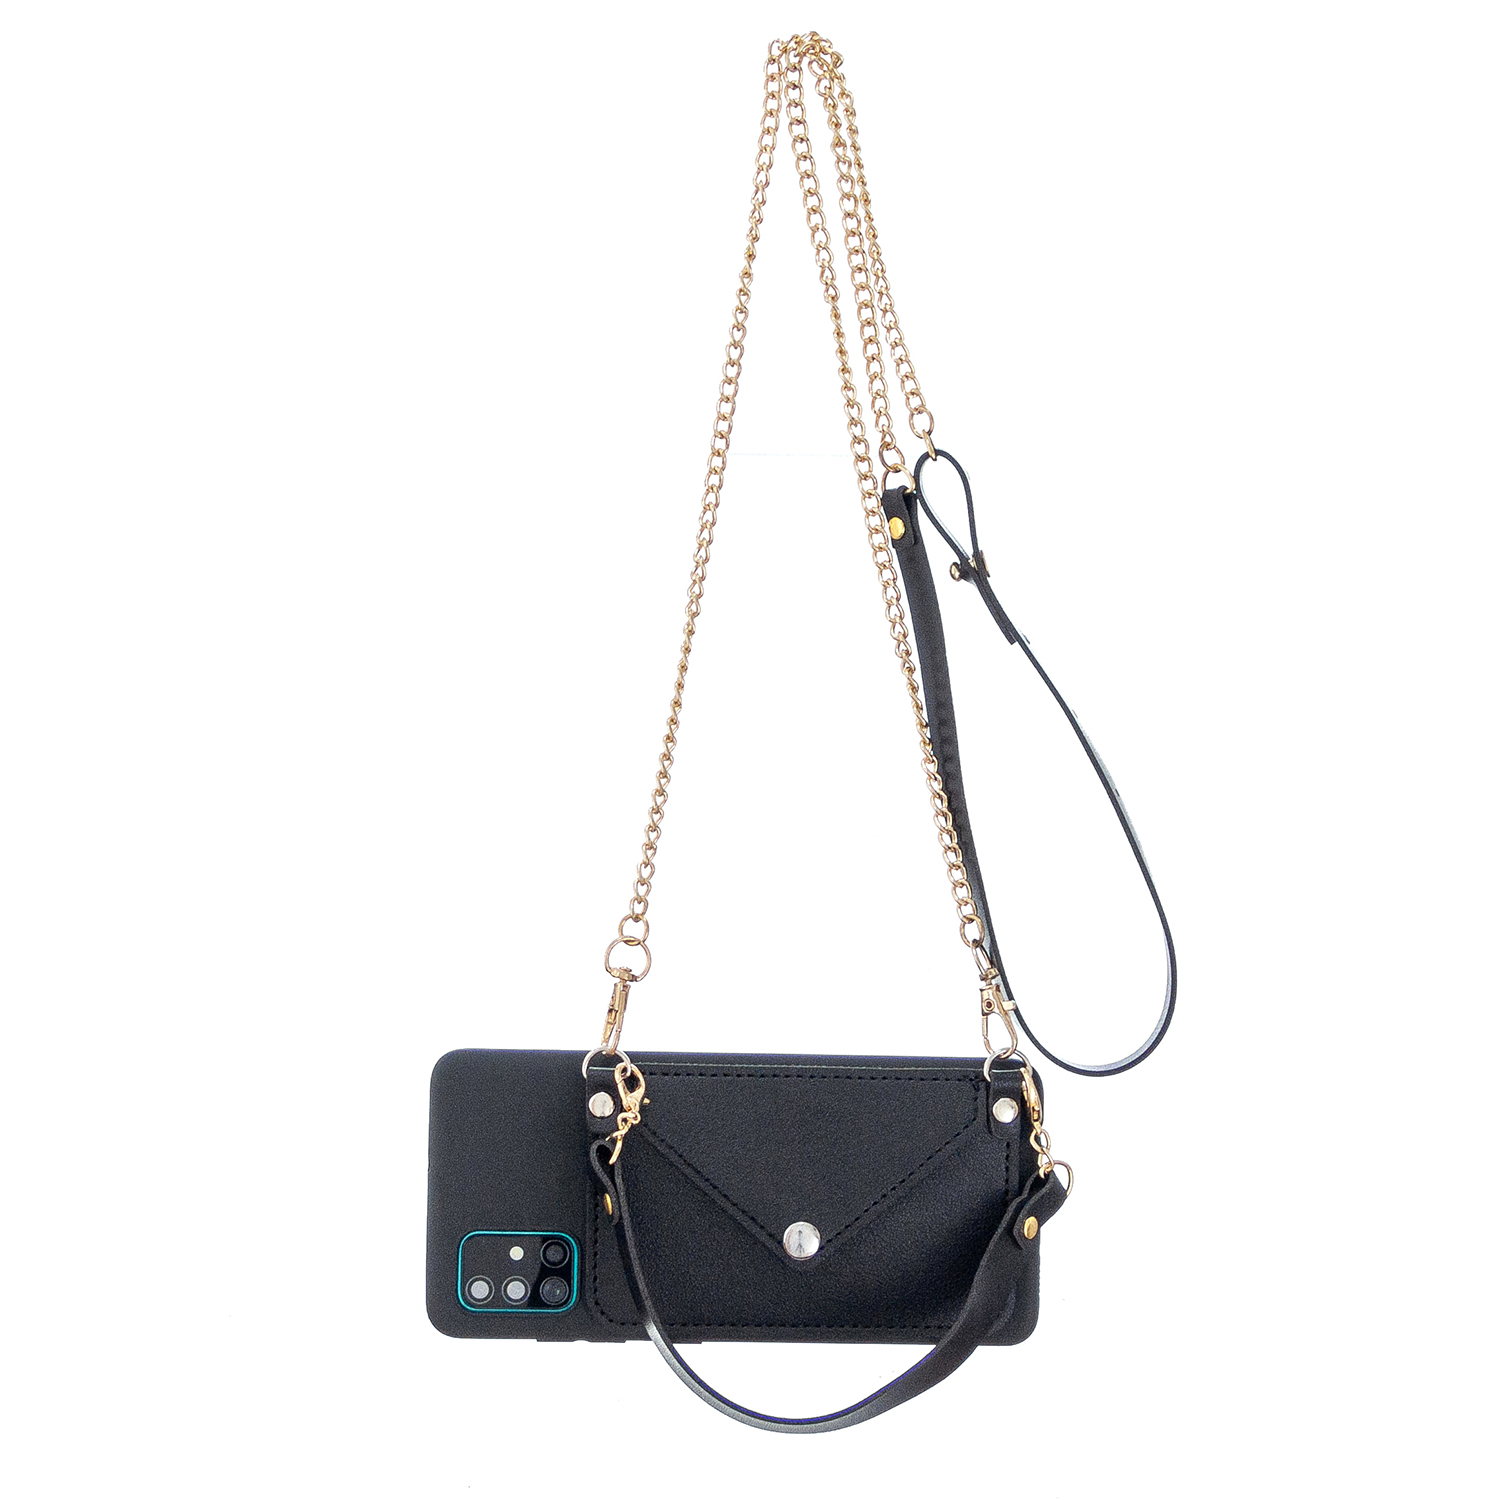 For HUAWEI P40/P40 Lite/P40 Pro Mobile Phone Cover with Pu Leather Card Holder + Hand Rope + Straddle Rope black